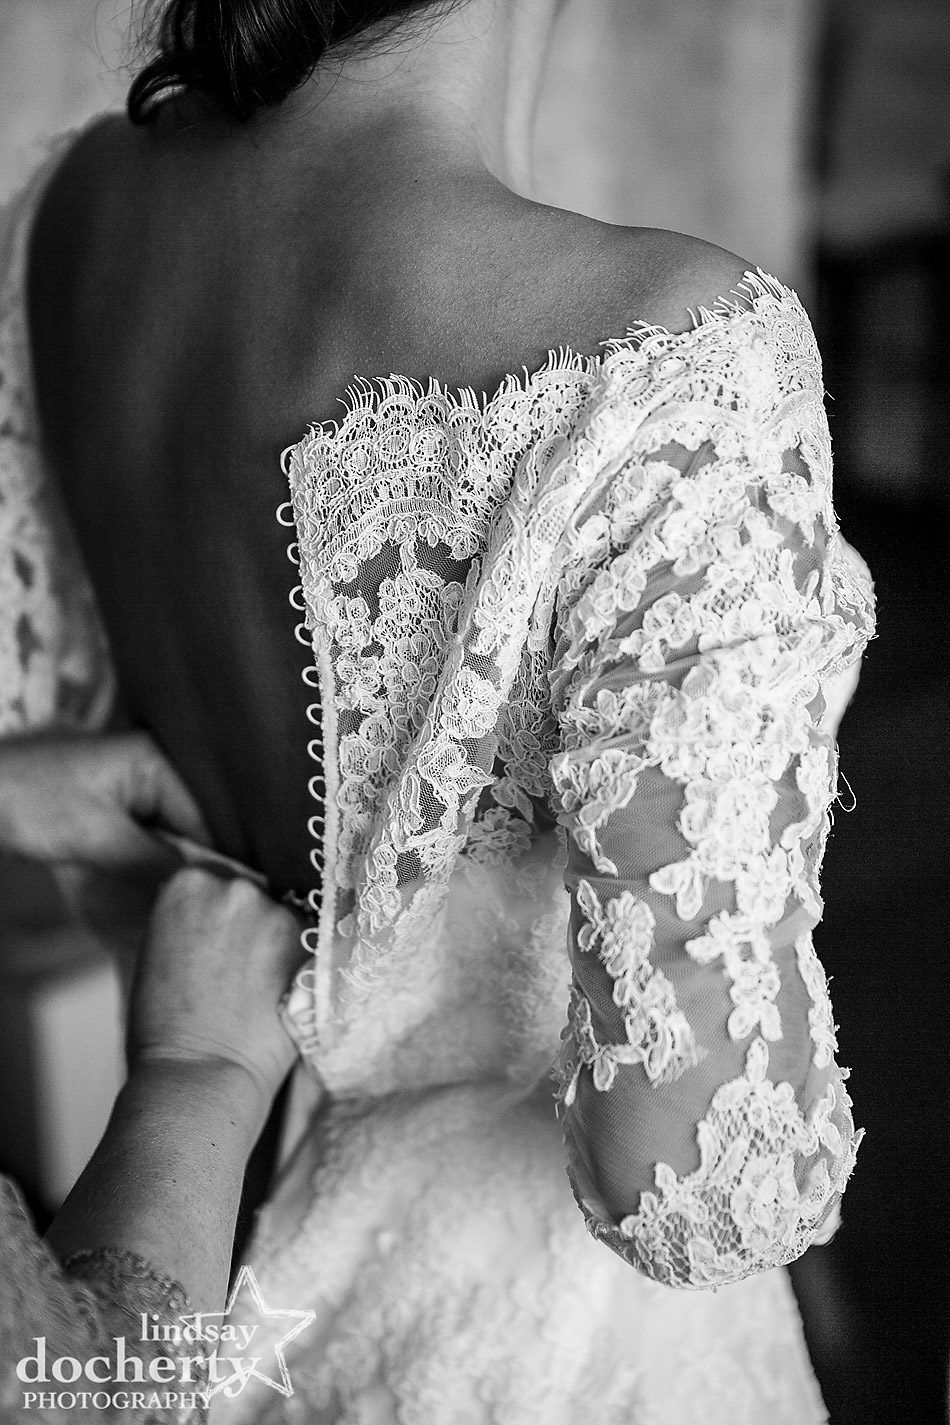 eyelash lace and buttons on wedding dress getting ready